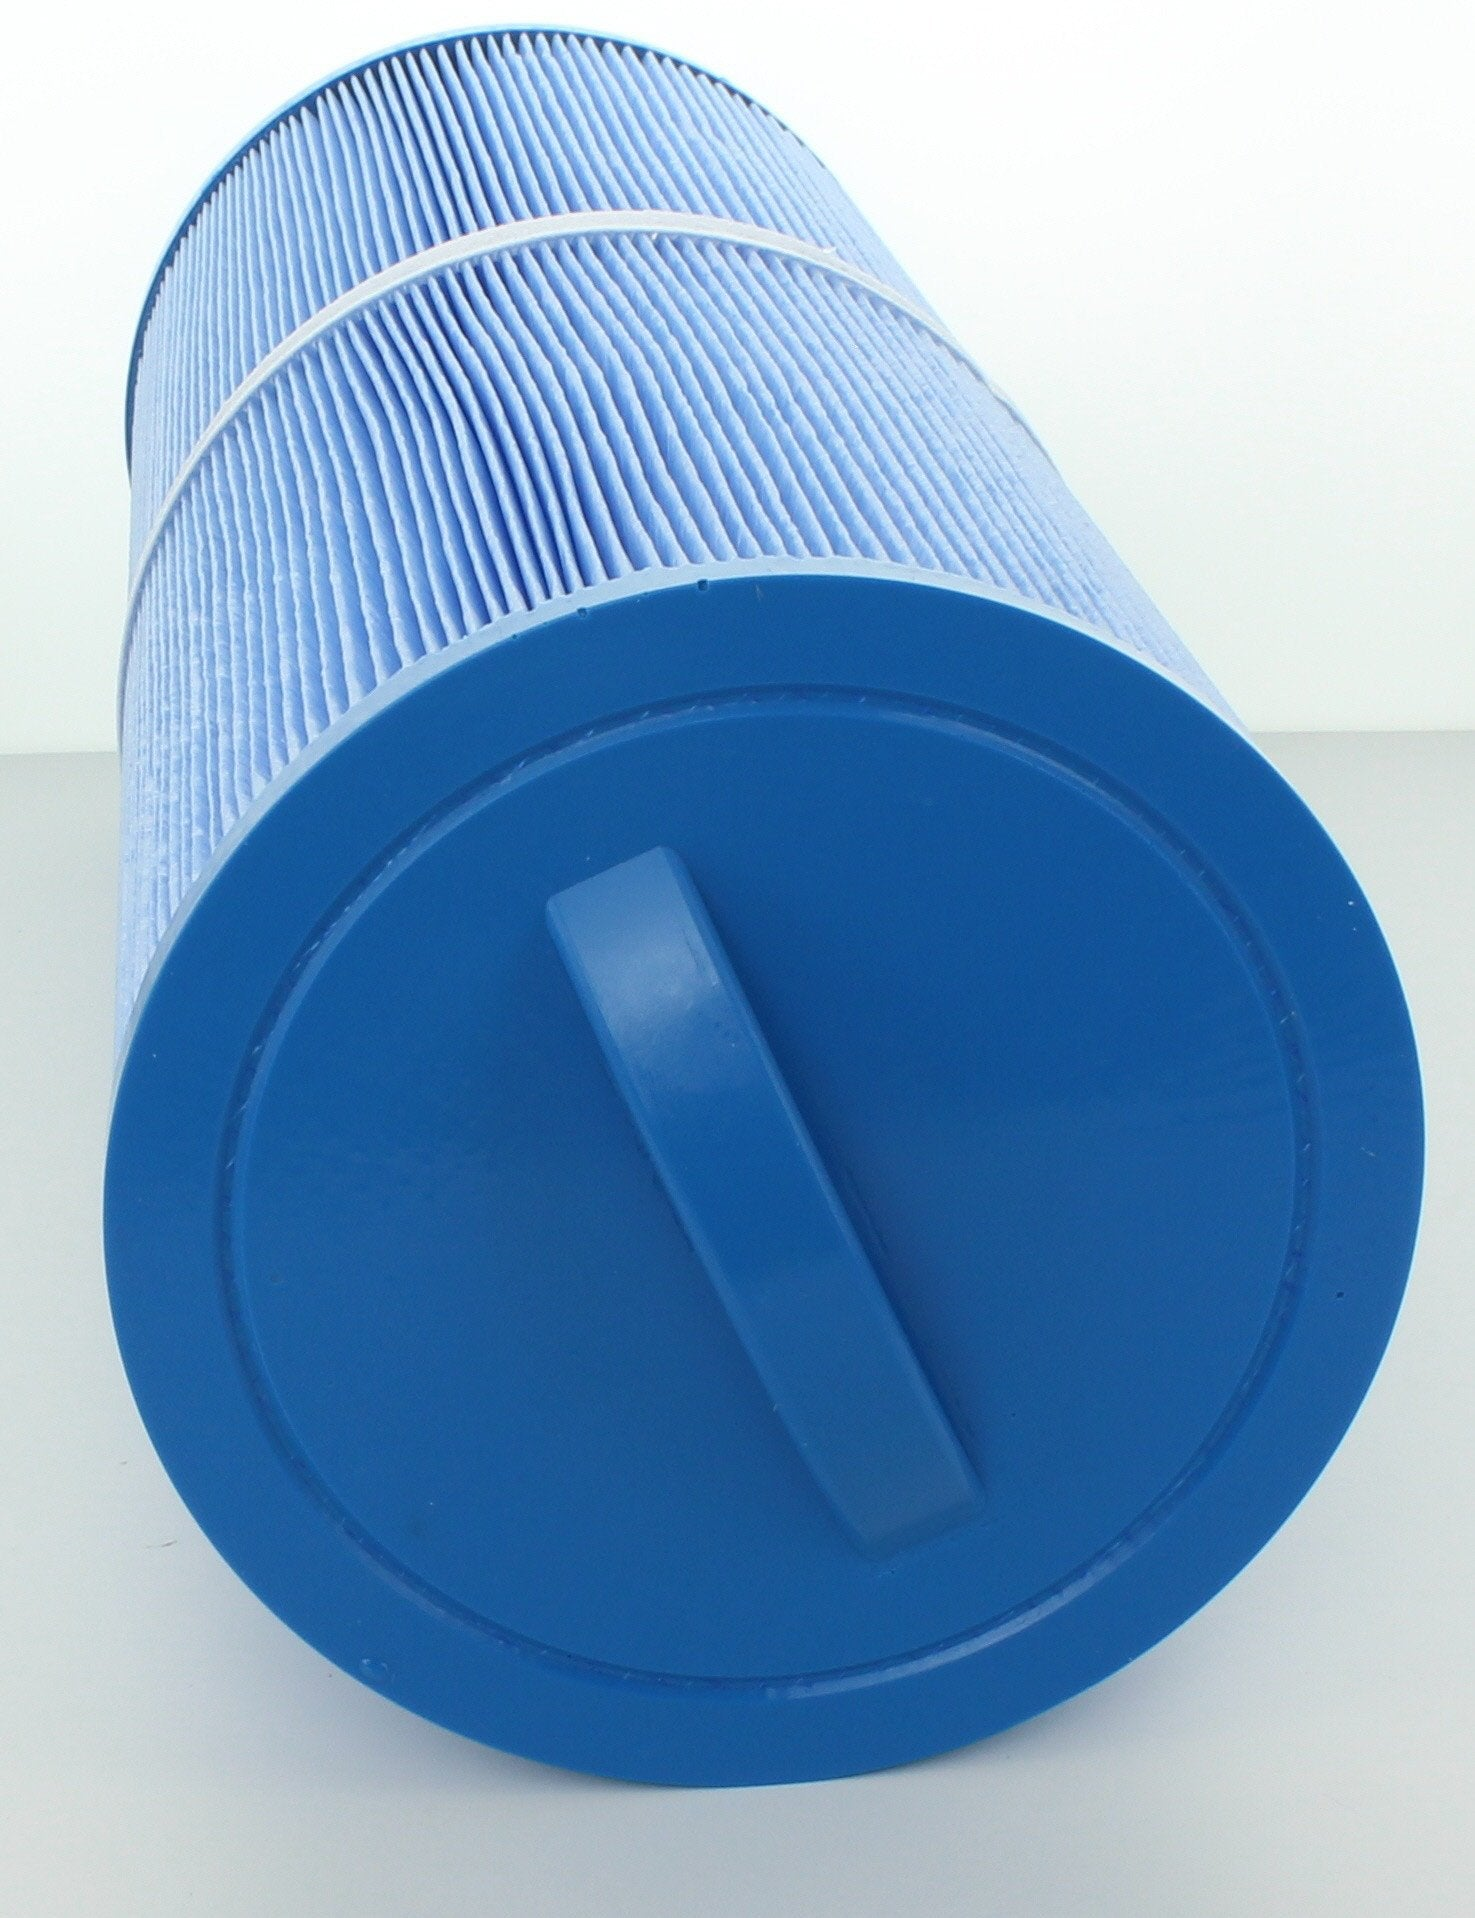 Replaces Unicel 5CH-502RA, Pleatco PPM50SC-F2M-M • Antimicrobial Hot Tub & Spa Filter Cartridge-Filter Cartridge-FilterDeal.com